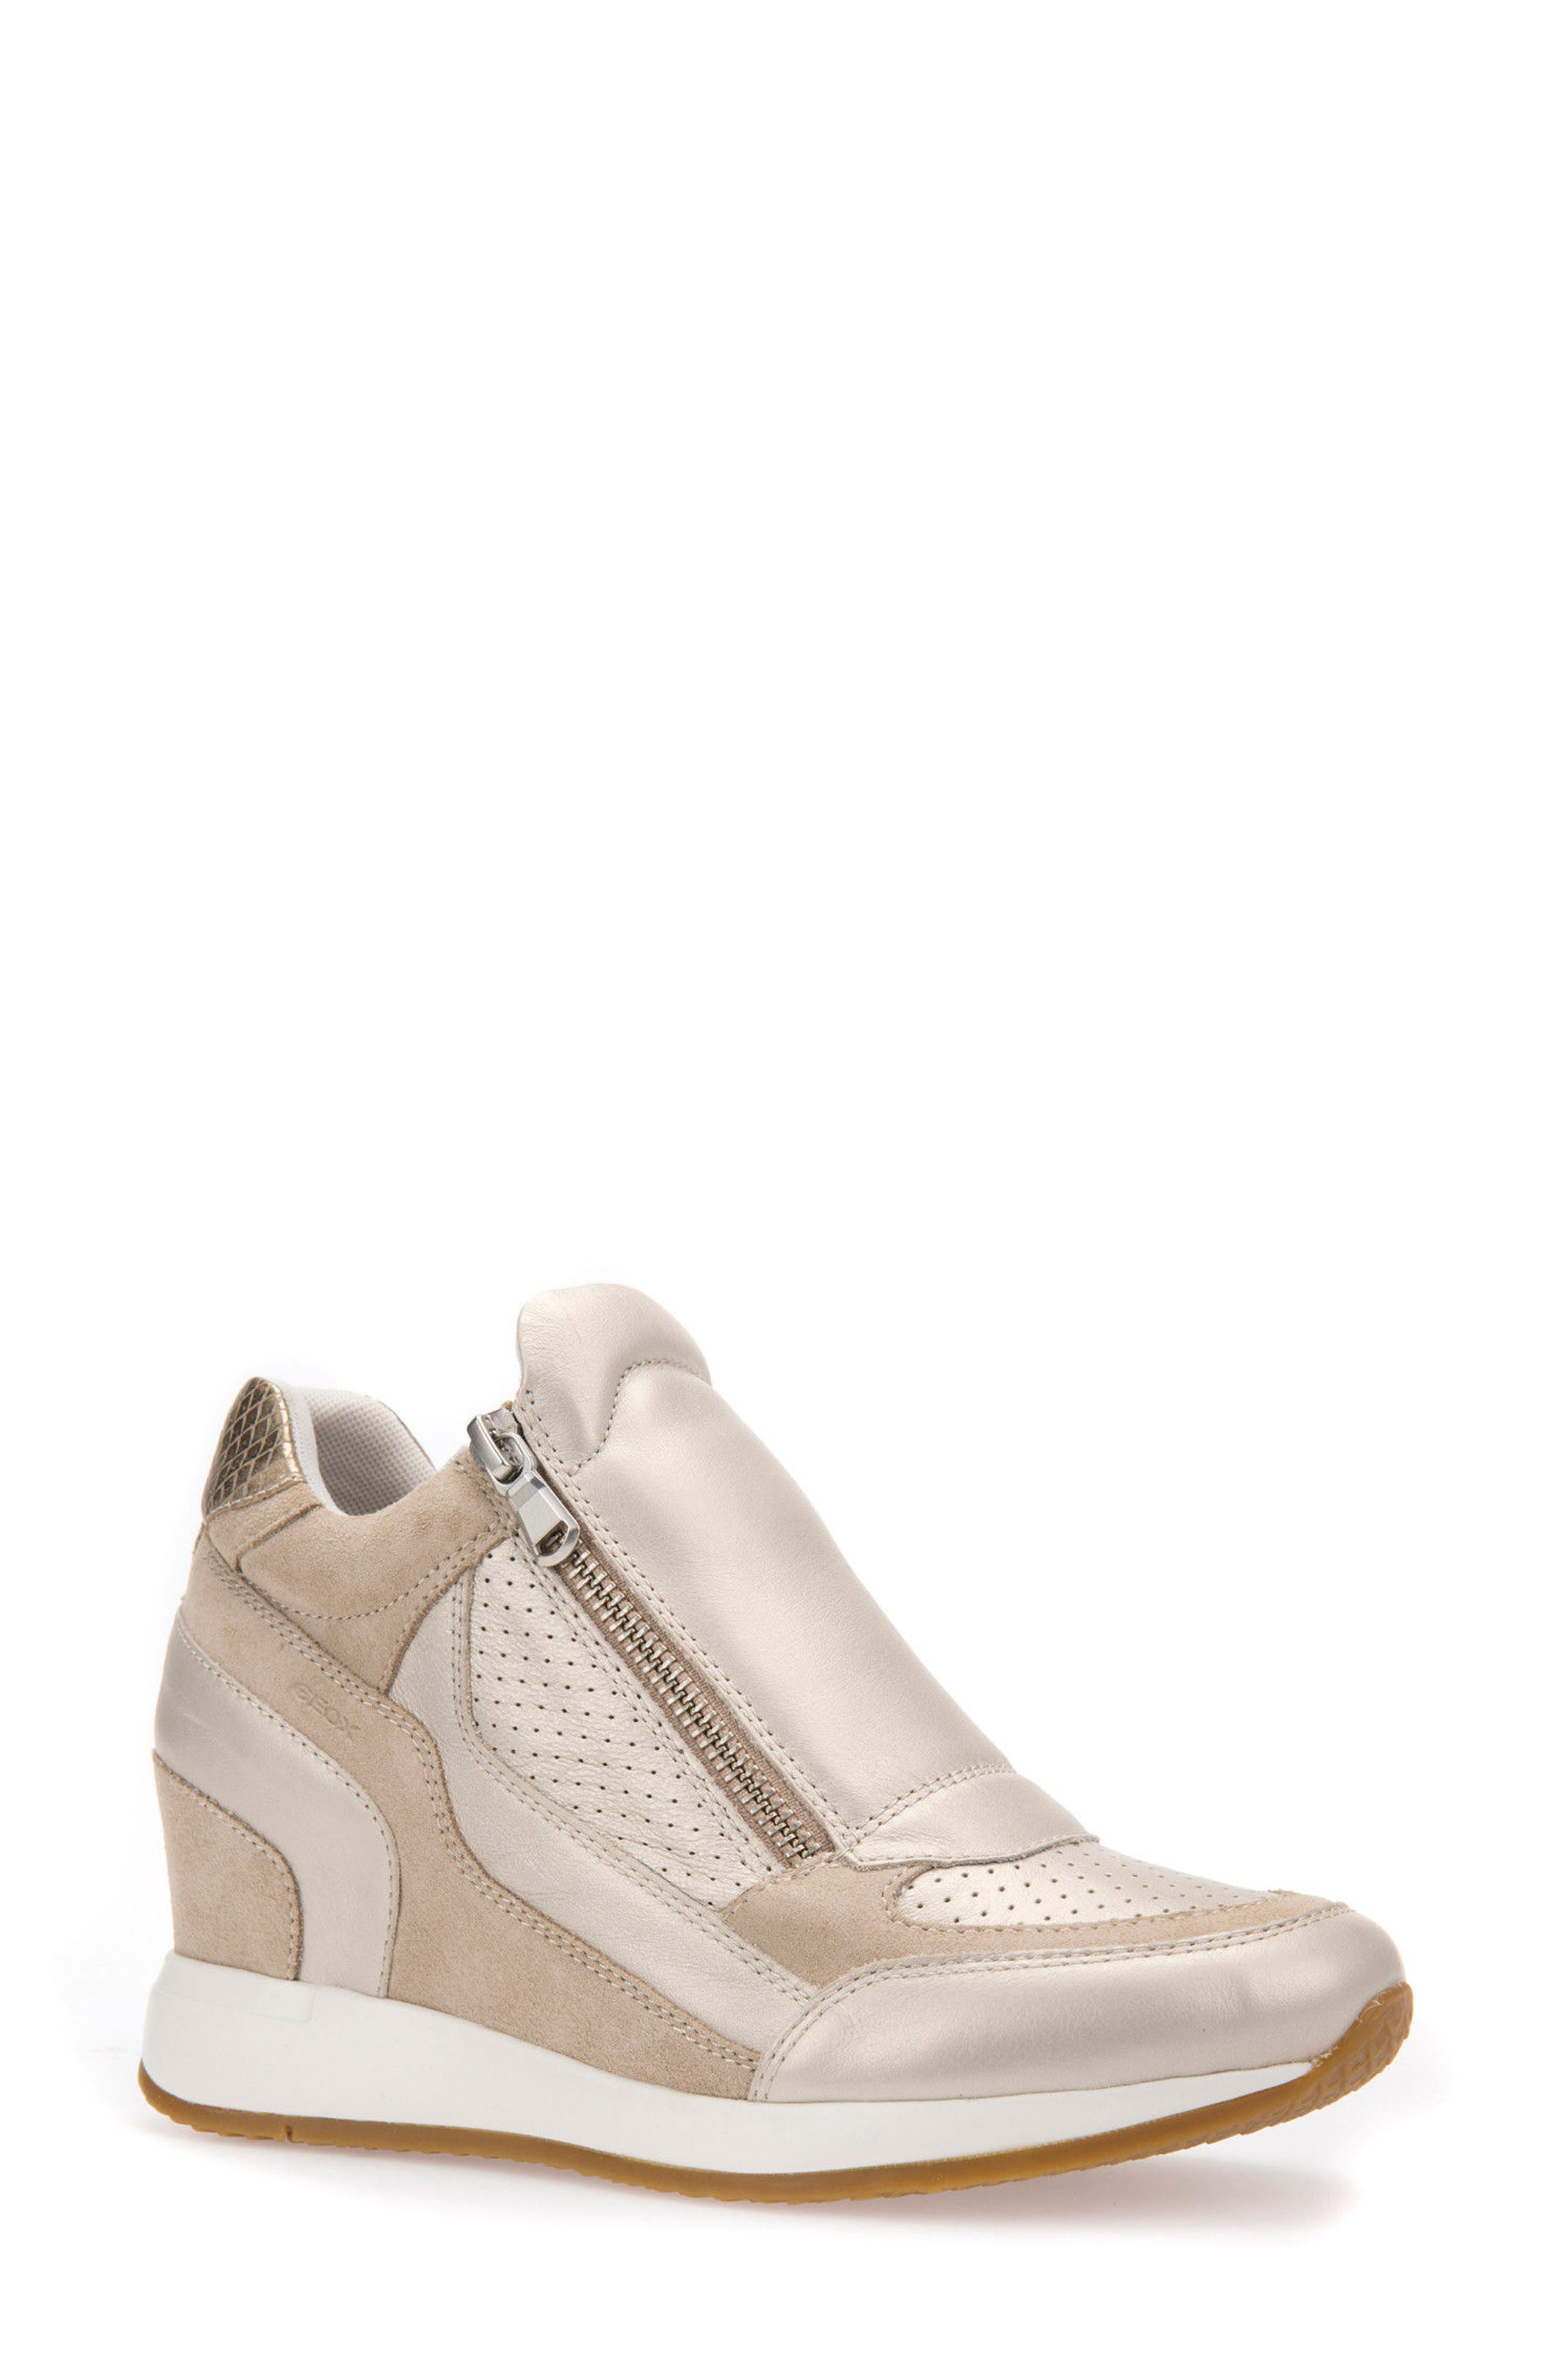 Nydame Wedge Sneaker,                         Main,                         color, PLATINUM LEATHER